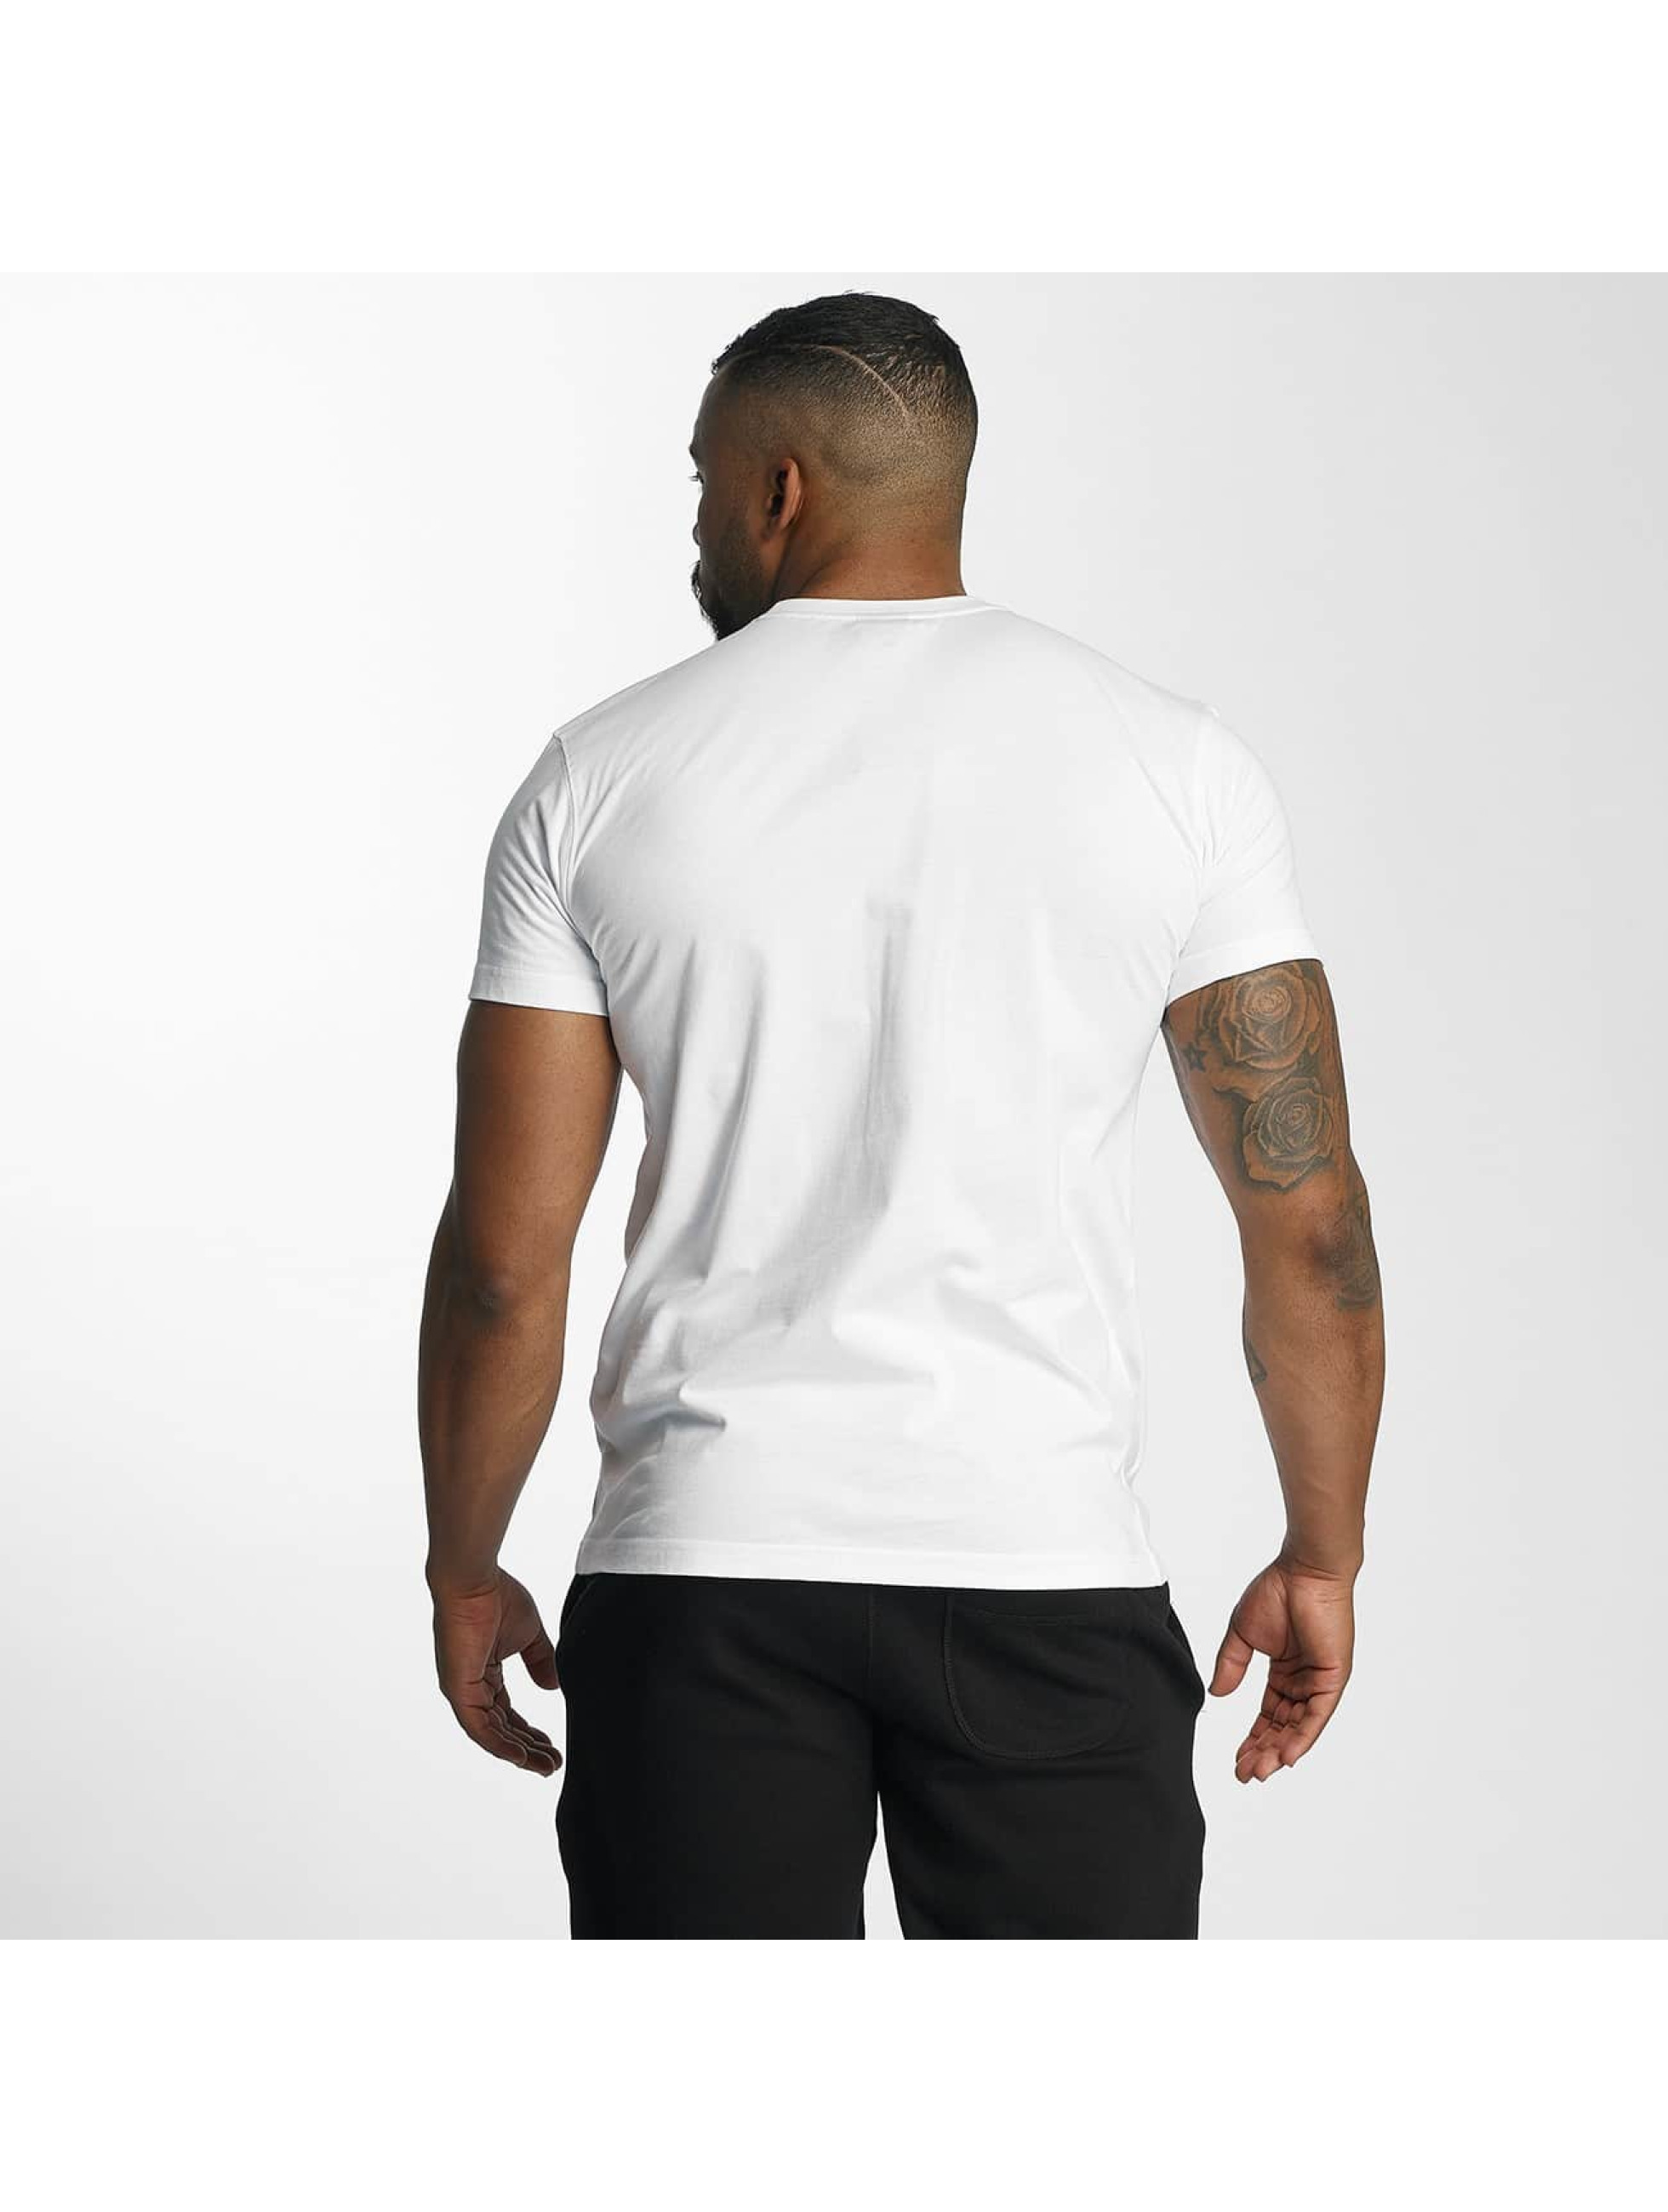 Pusher Apparel Футболка White Carrera белый